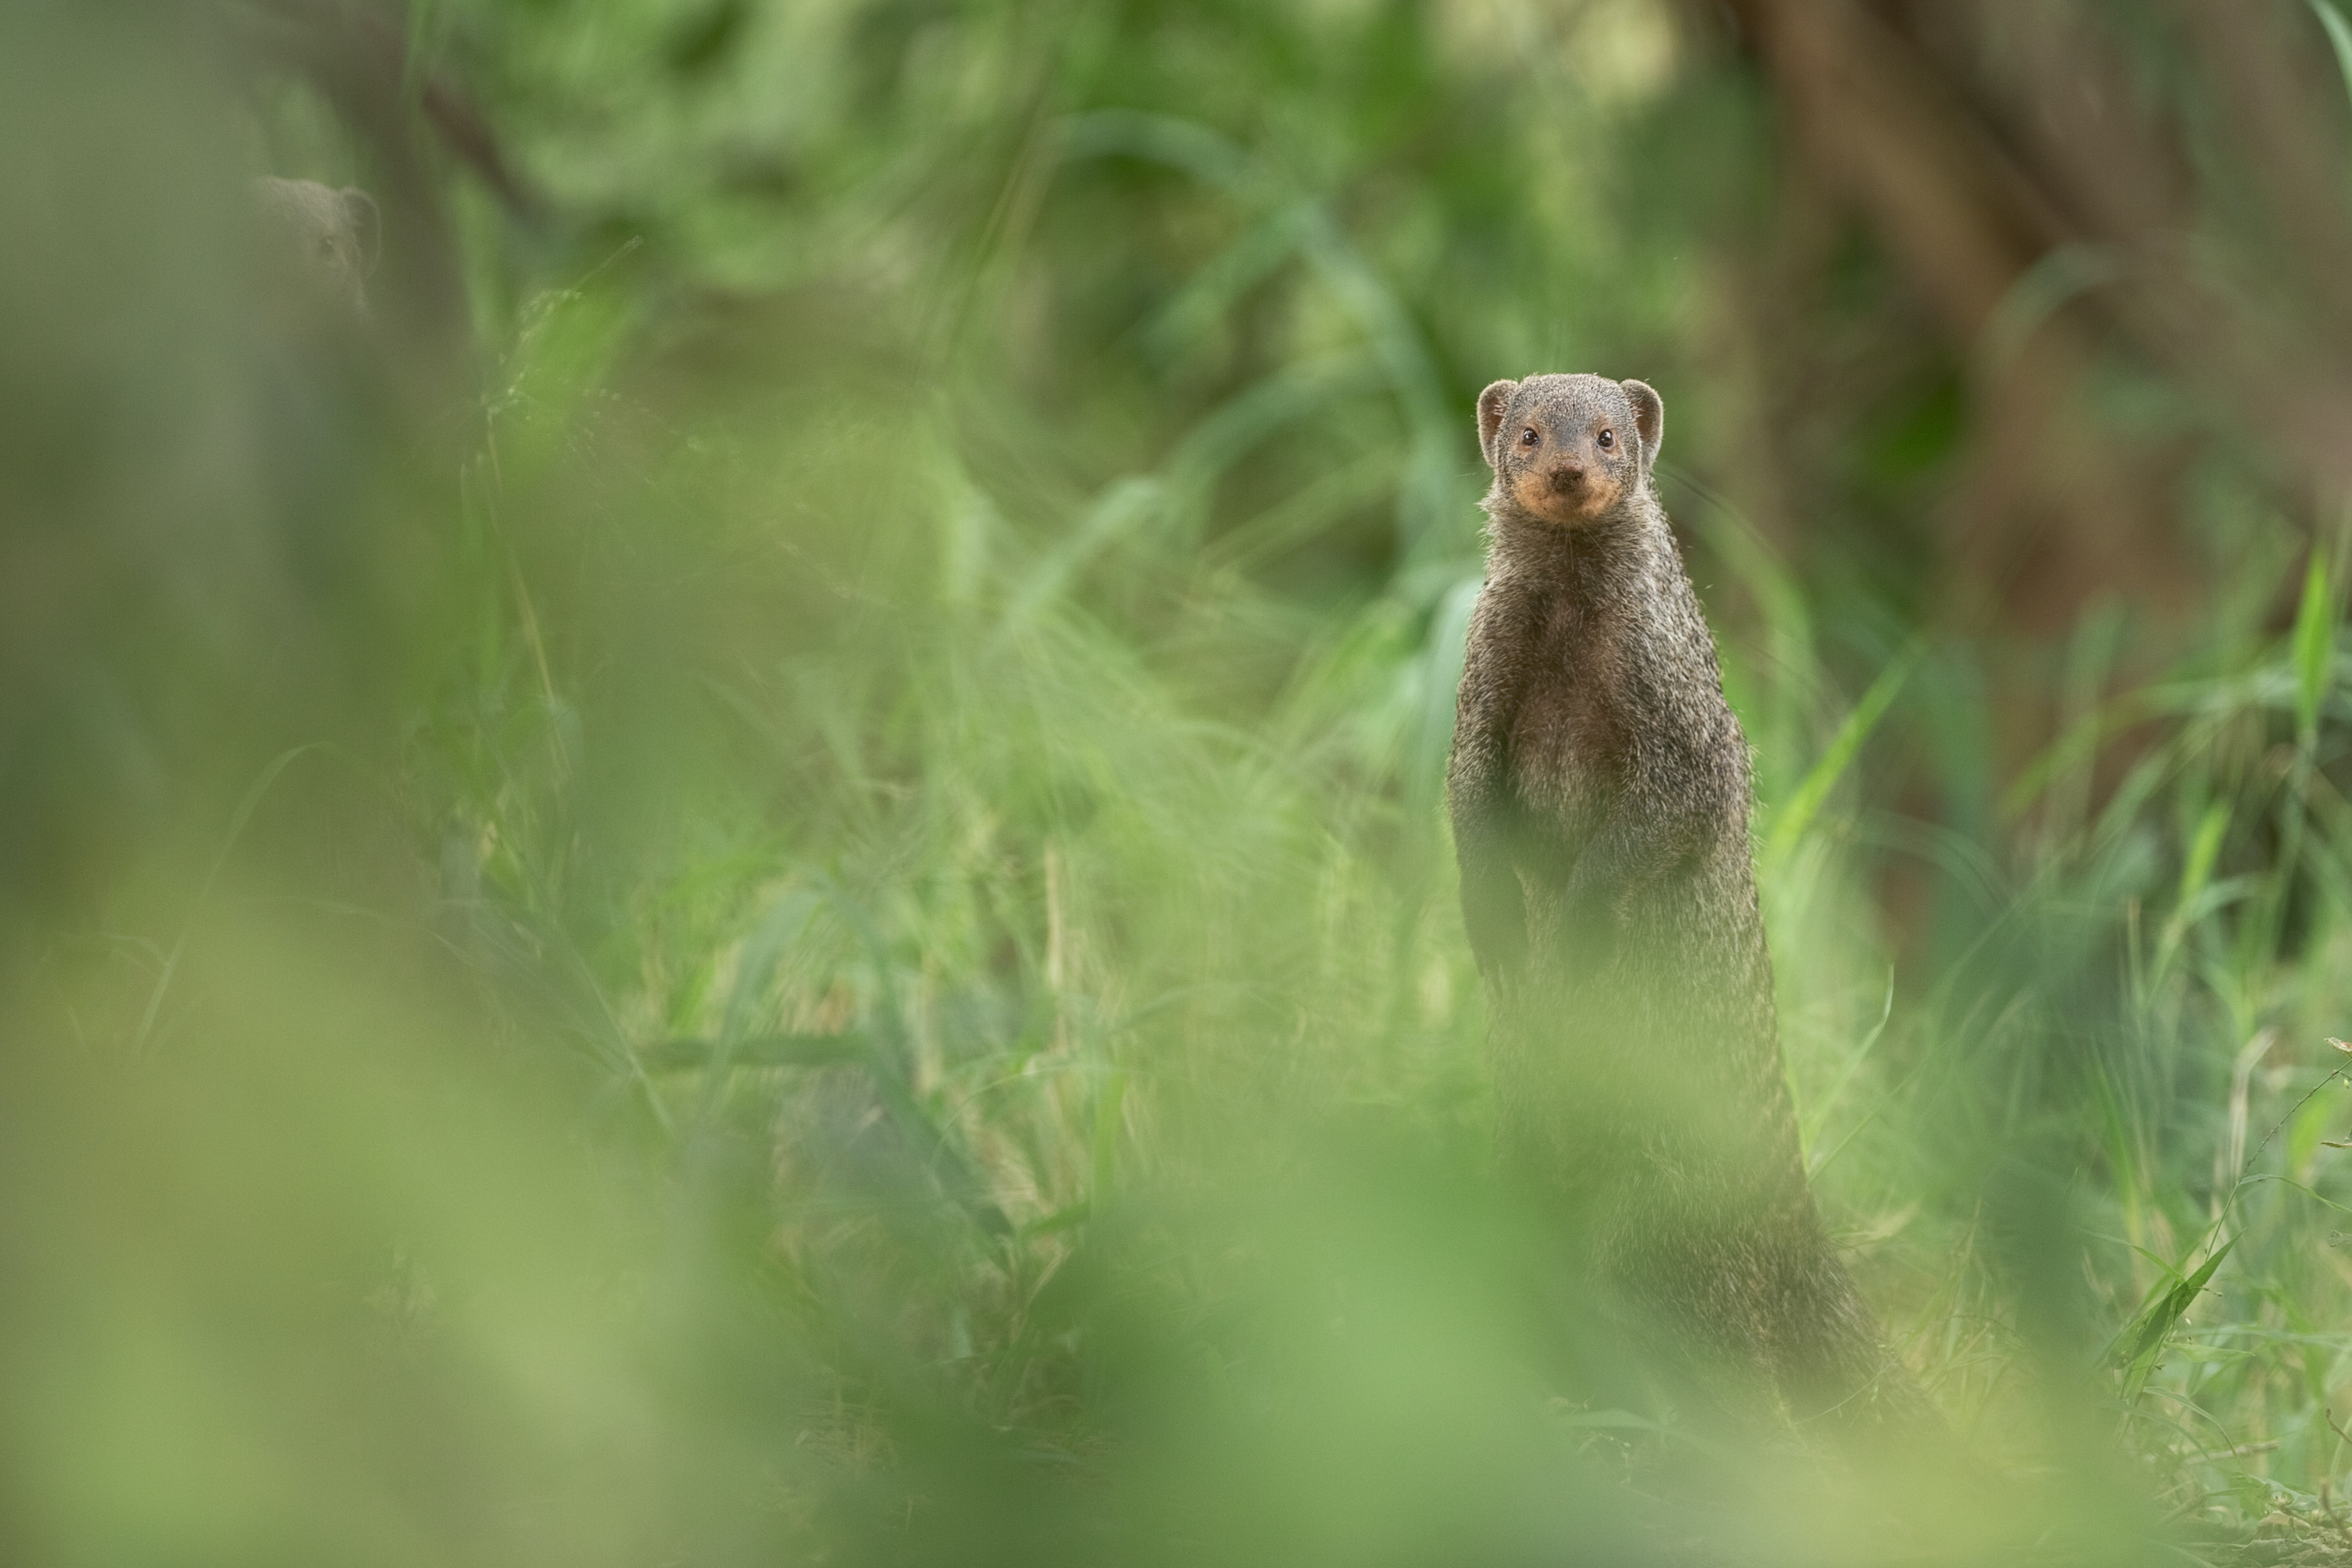 brown rodent standing on gress